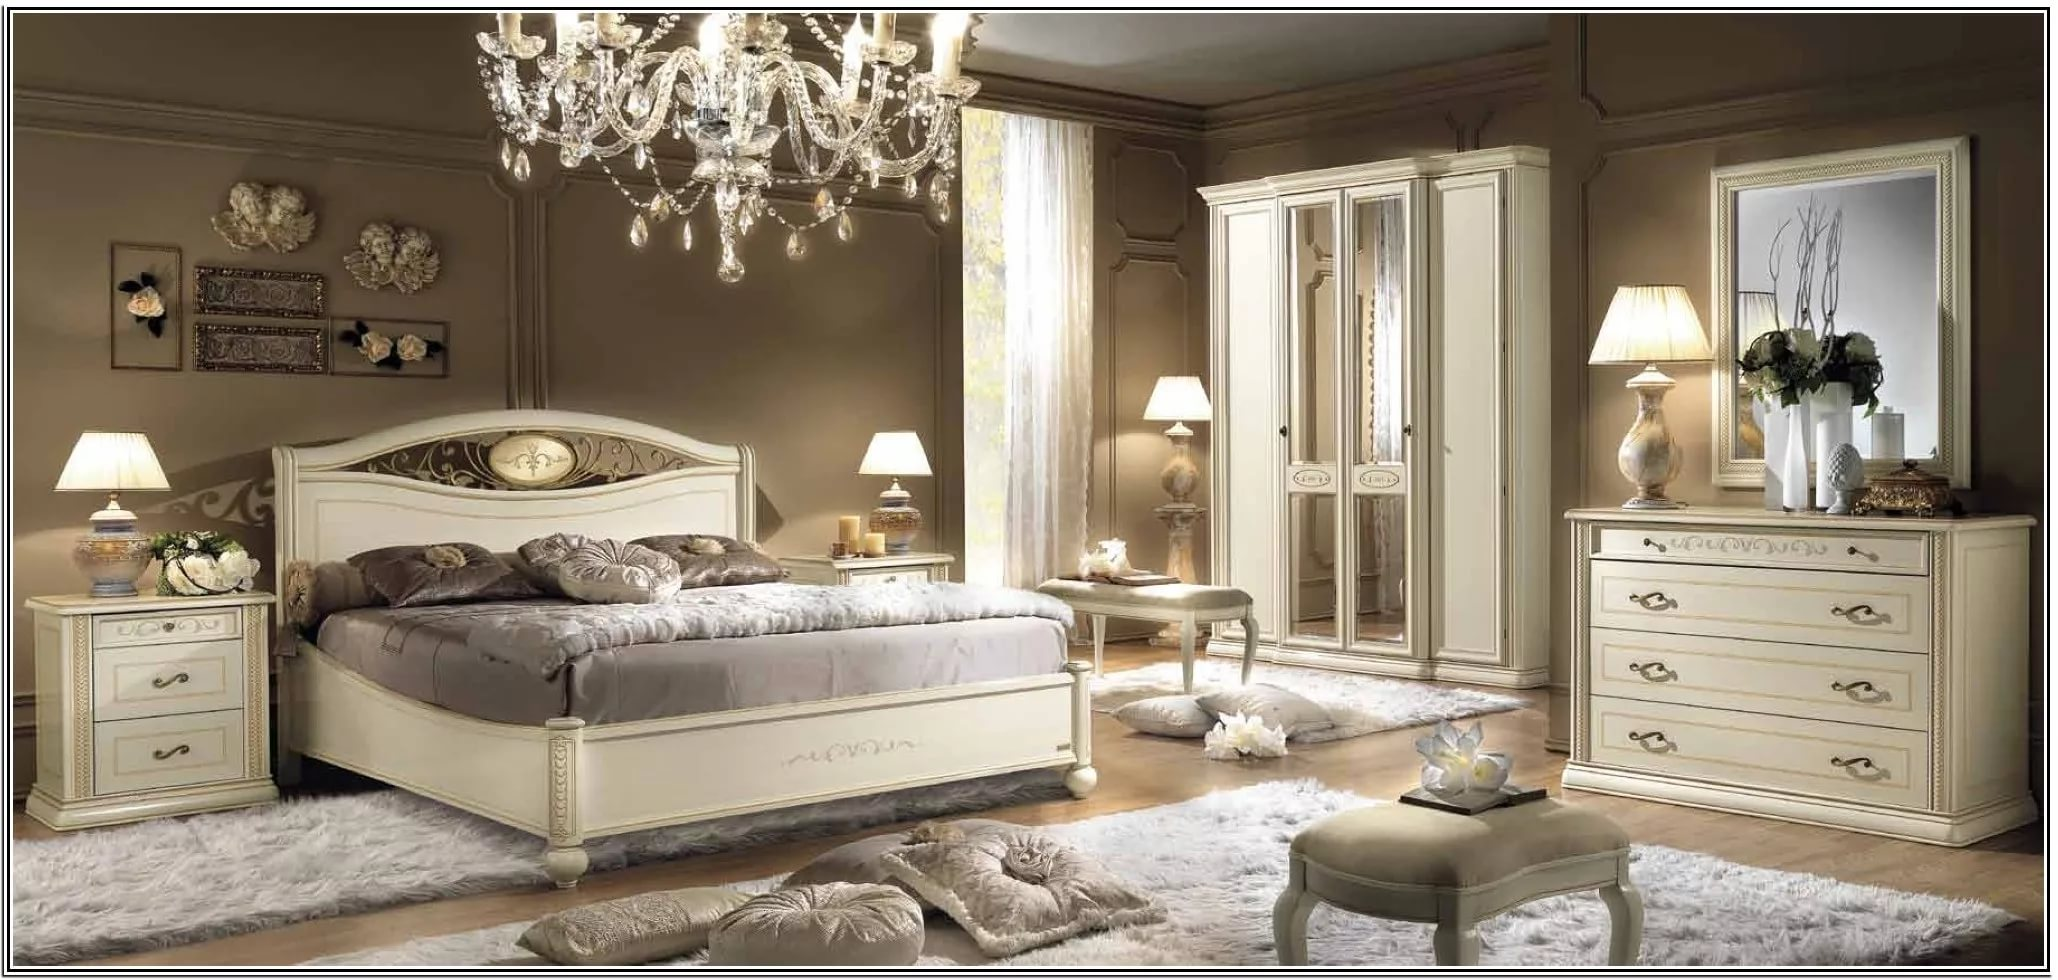 Mixing White And Dark Wood Furniture In Bedroom Home